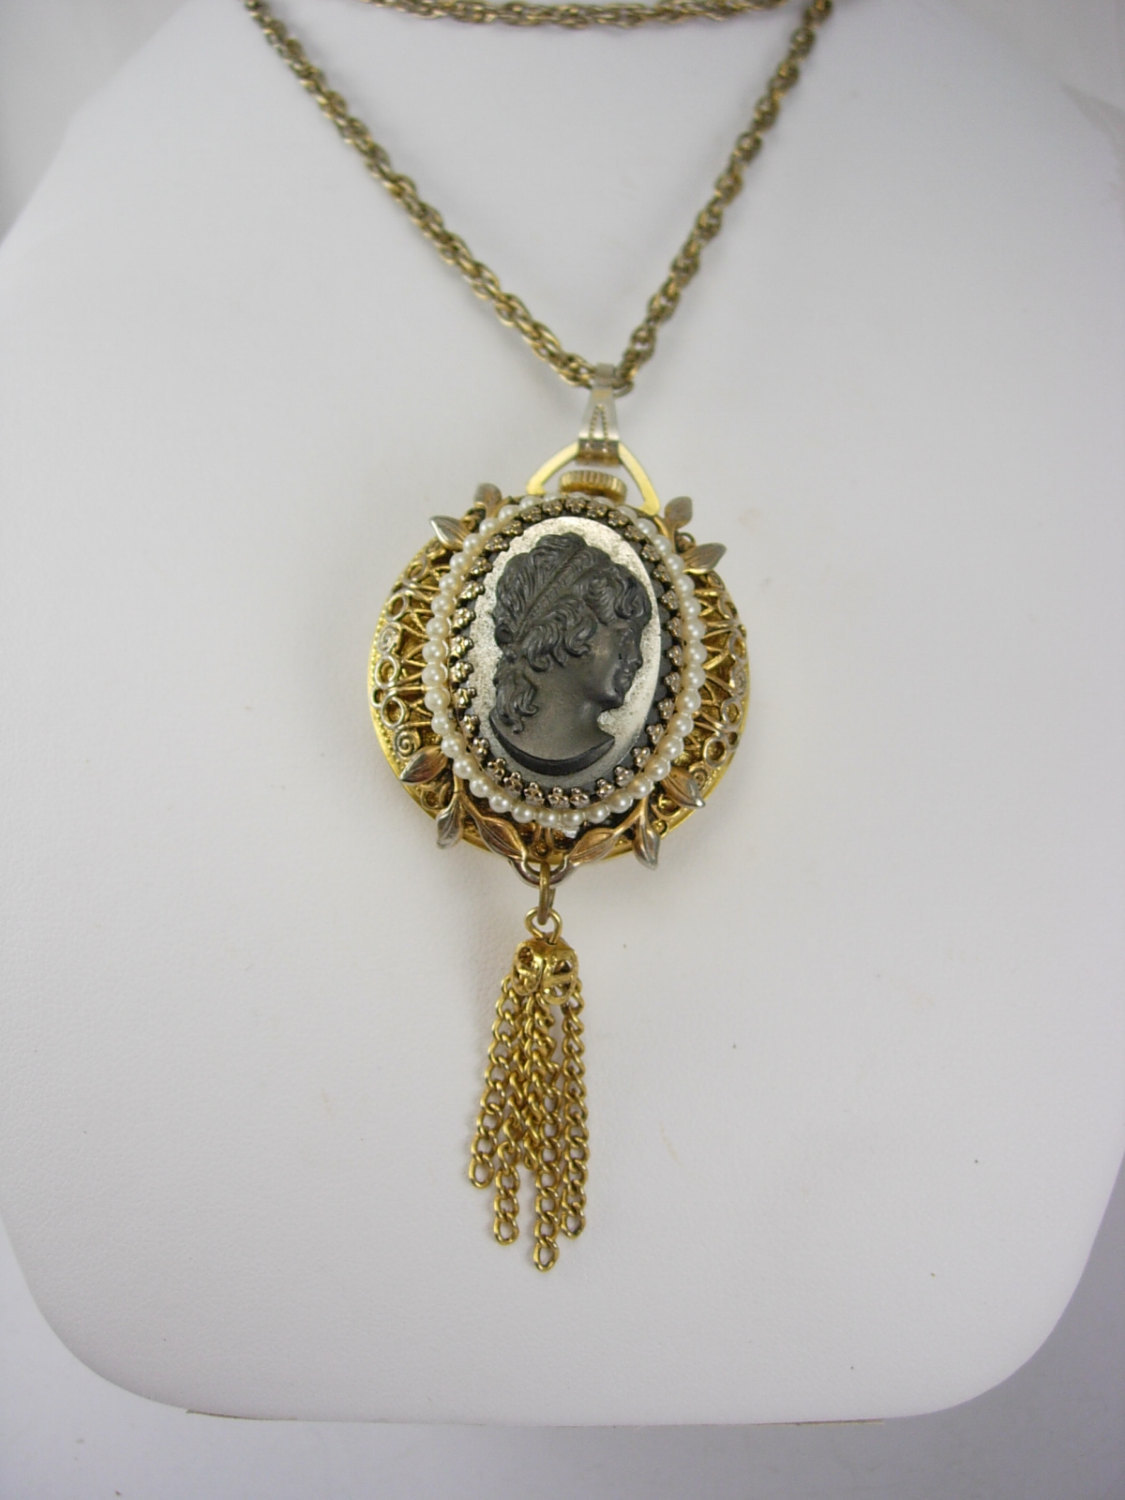 Primary image for Vintage Woldman Swiss watch Cameo  necklace Pendant necklace faux pearls 24 inch